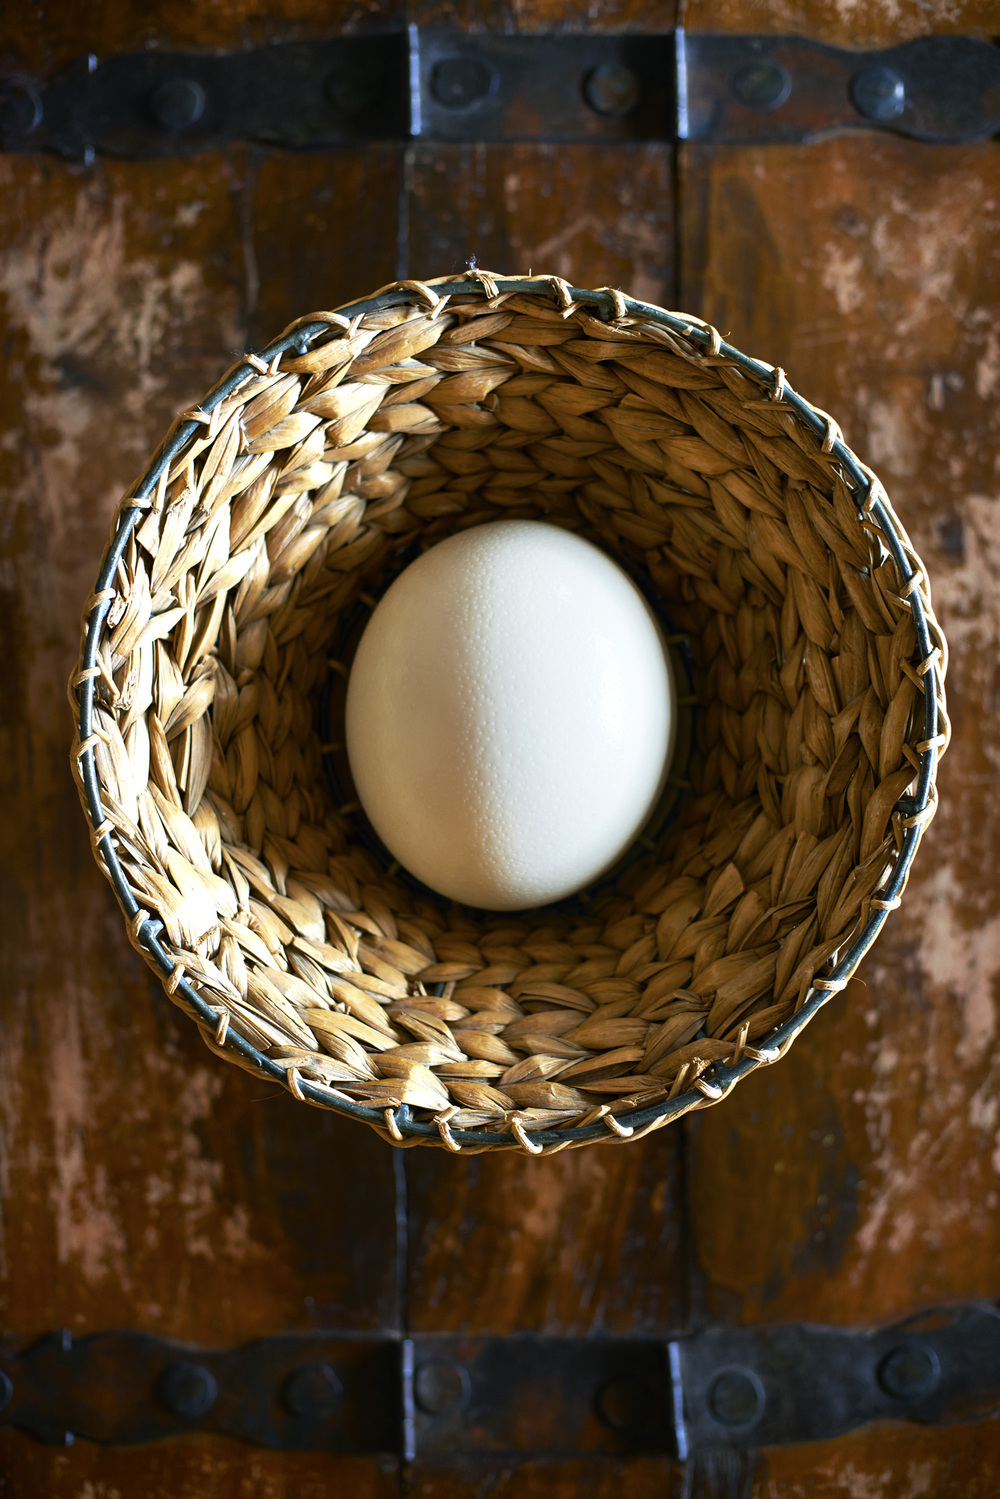 bush cott detail egg bowl.jpg